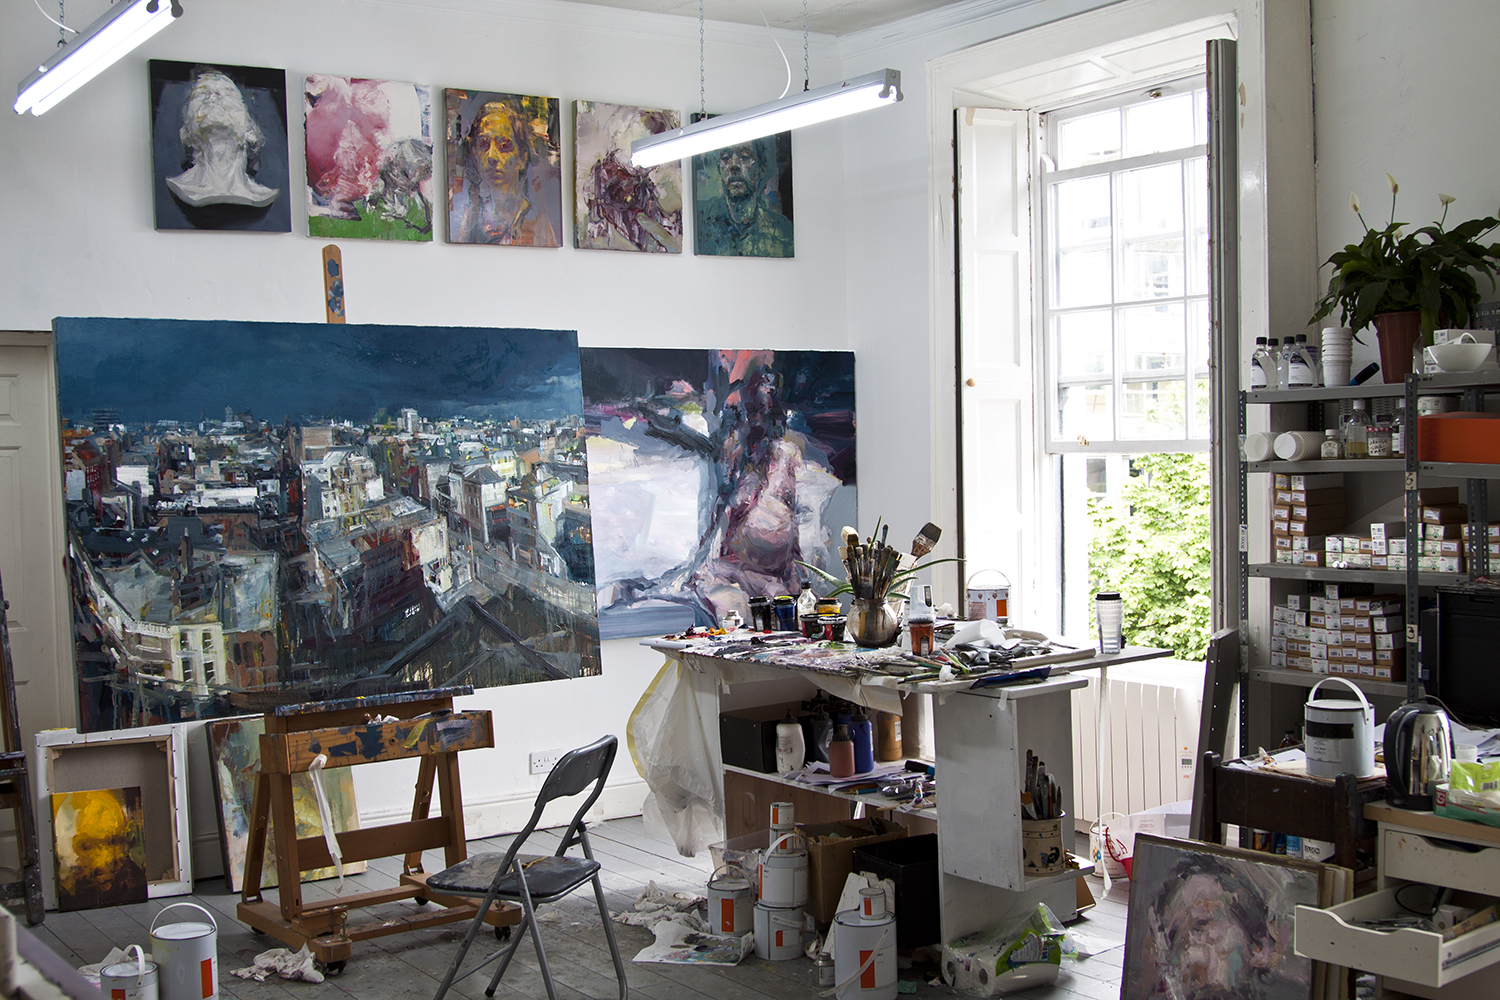 Studio, works in progress